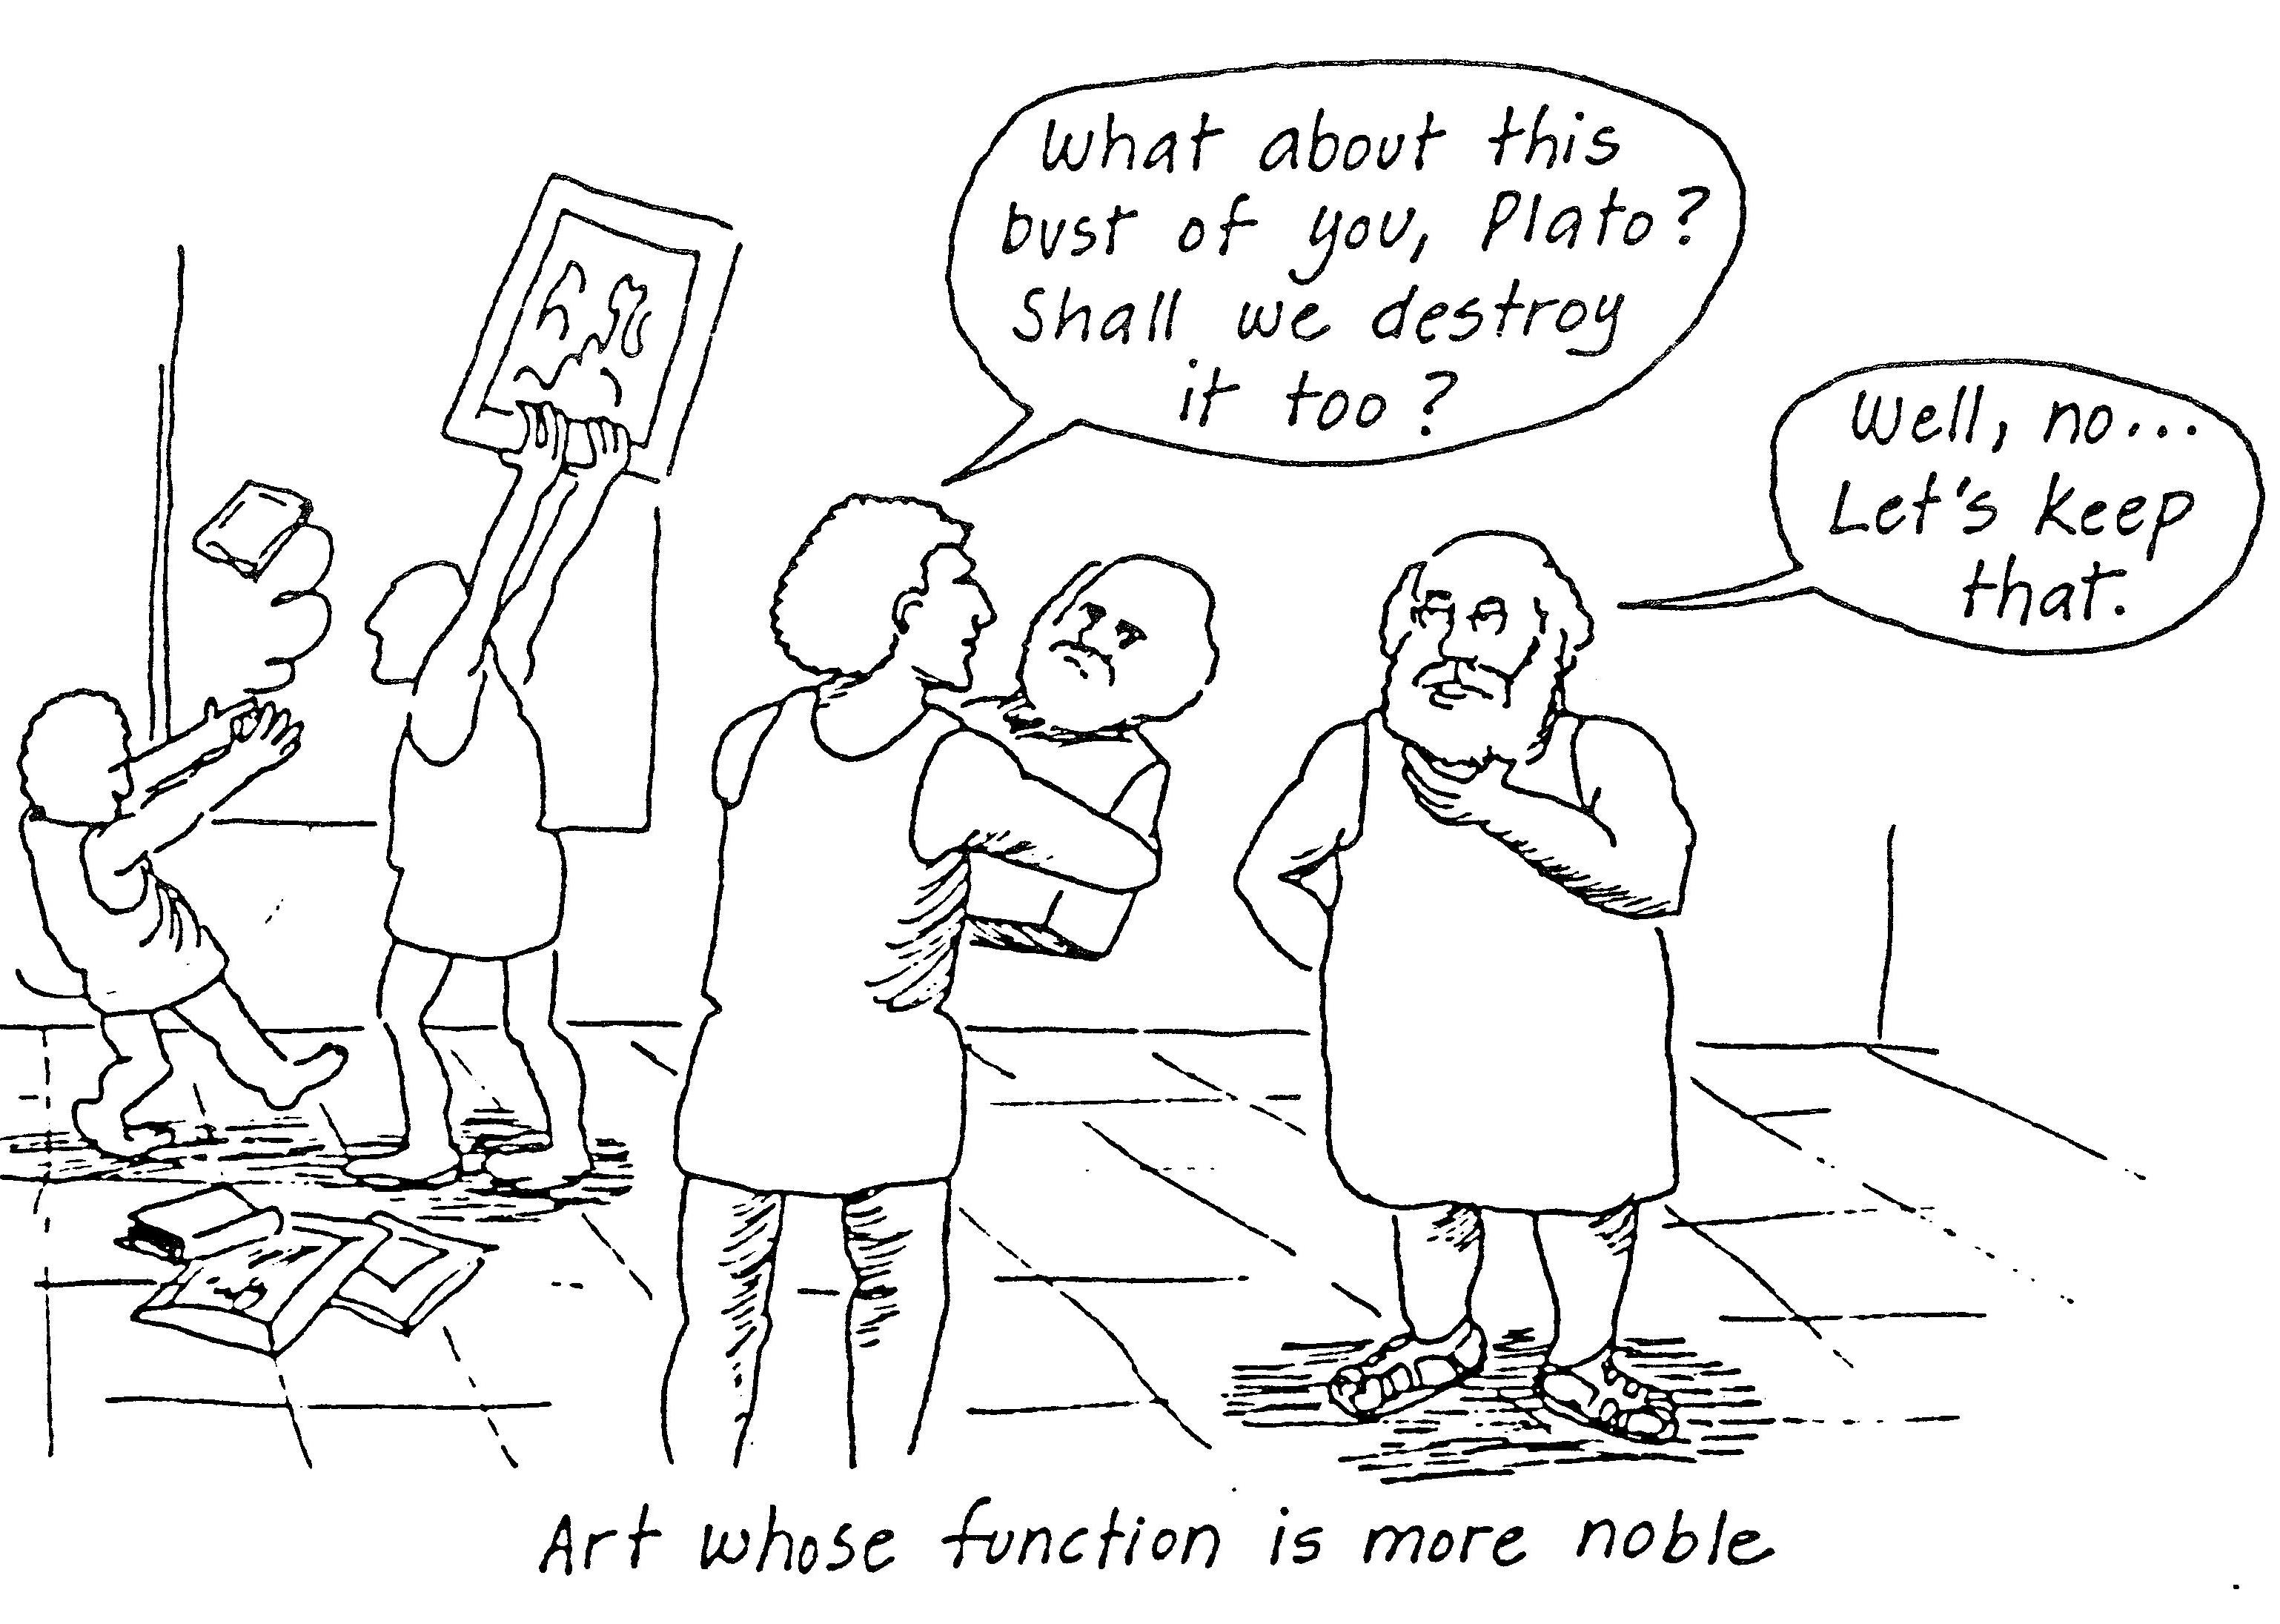 Plato and art that is more noble